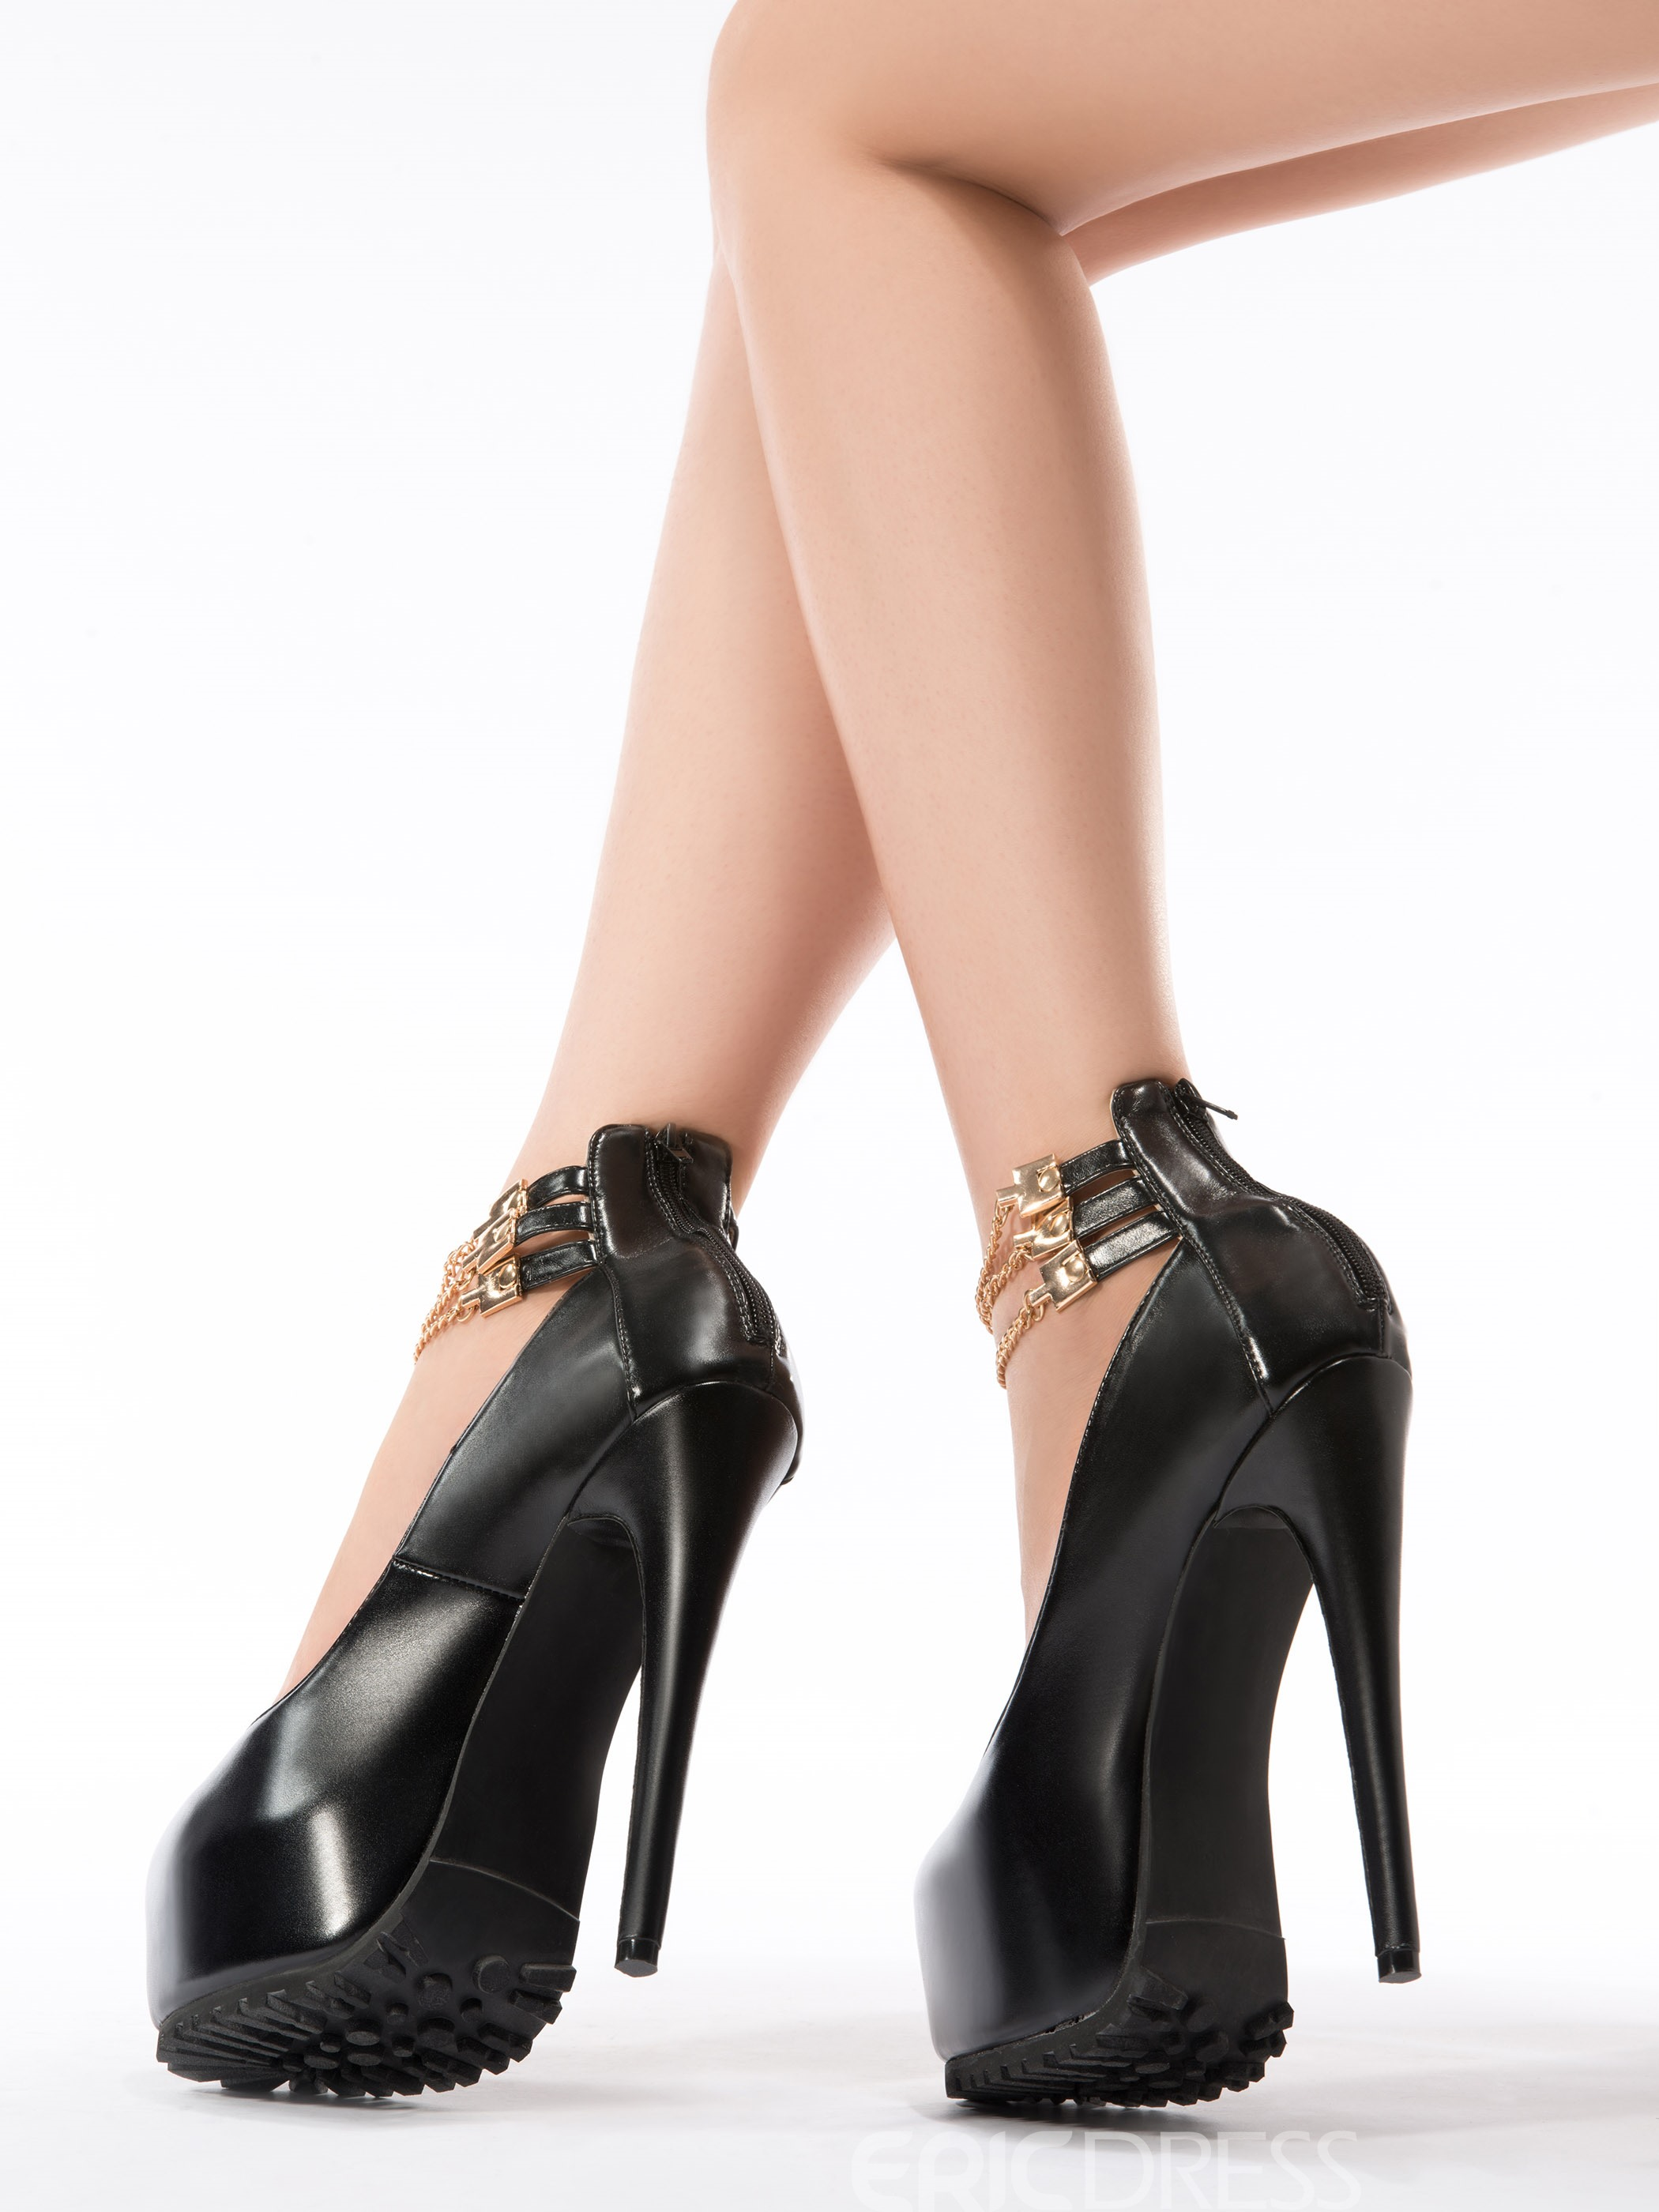 Fashionable Black Suede Ankle Strap Prom Shoes